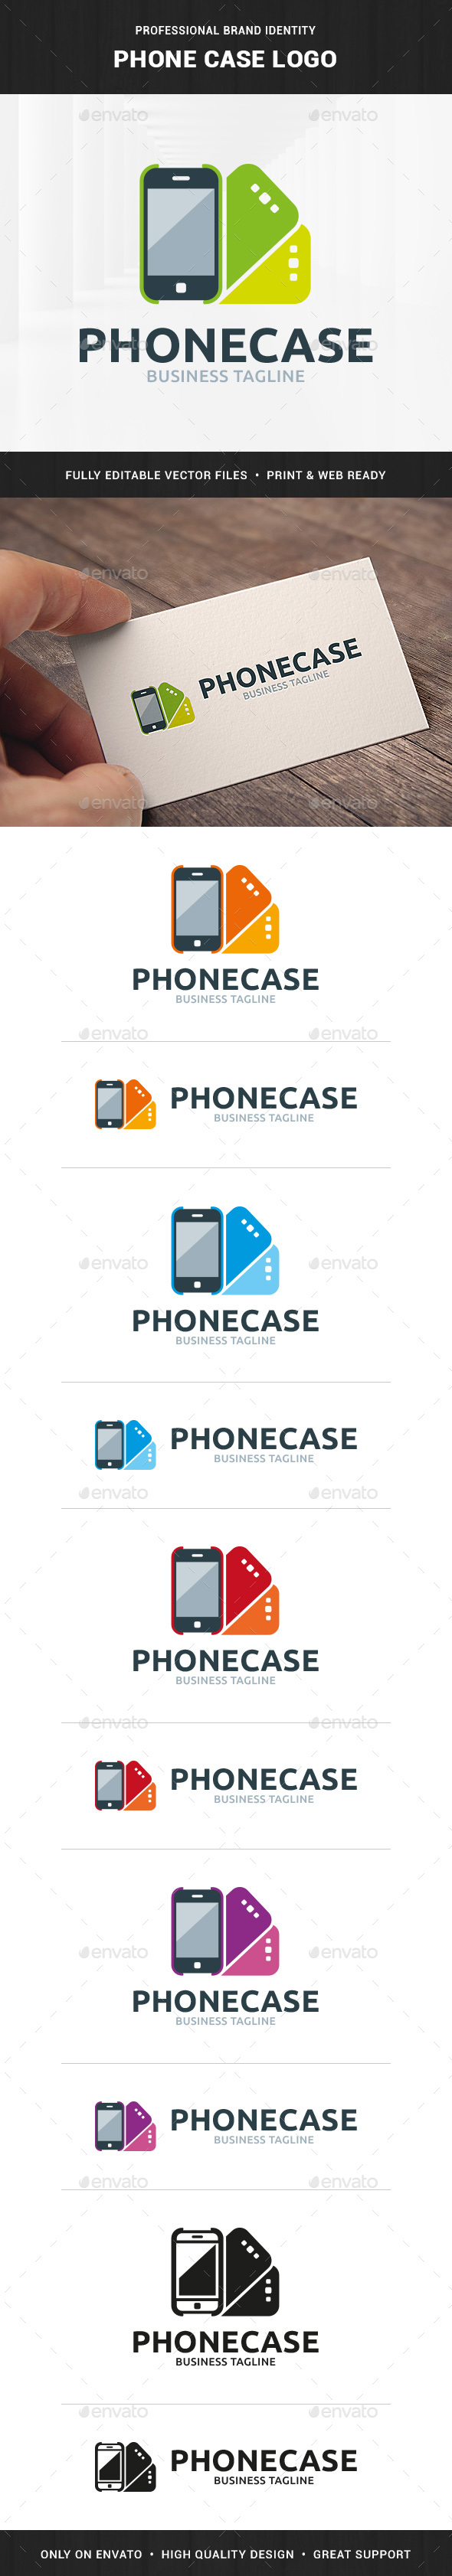 Phone Case Logo Template - Objects Logo Templates